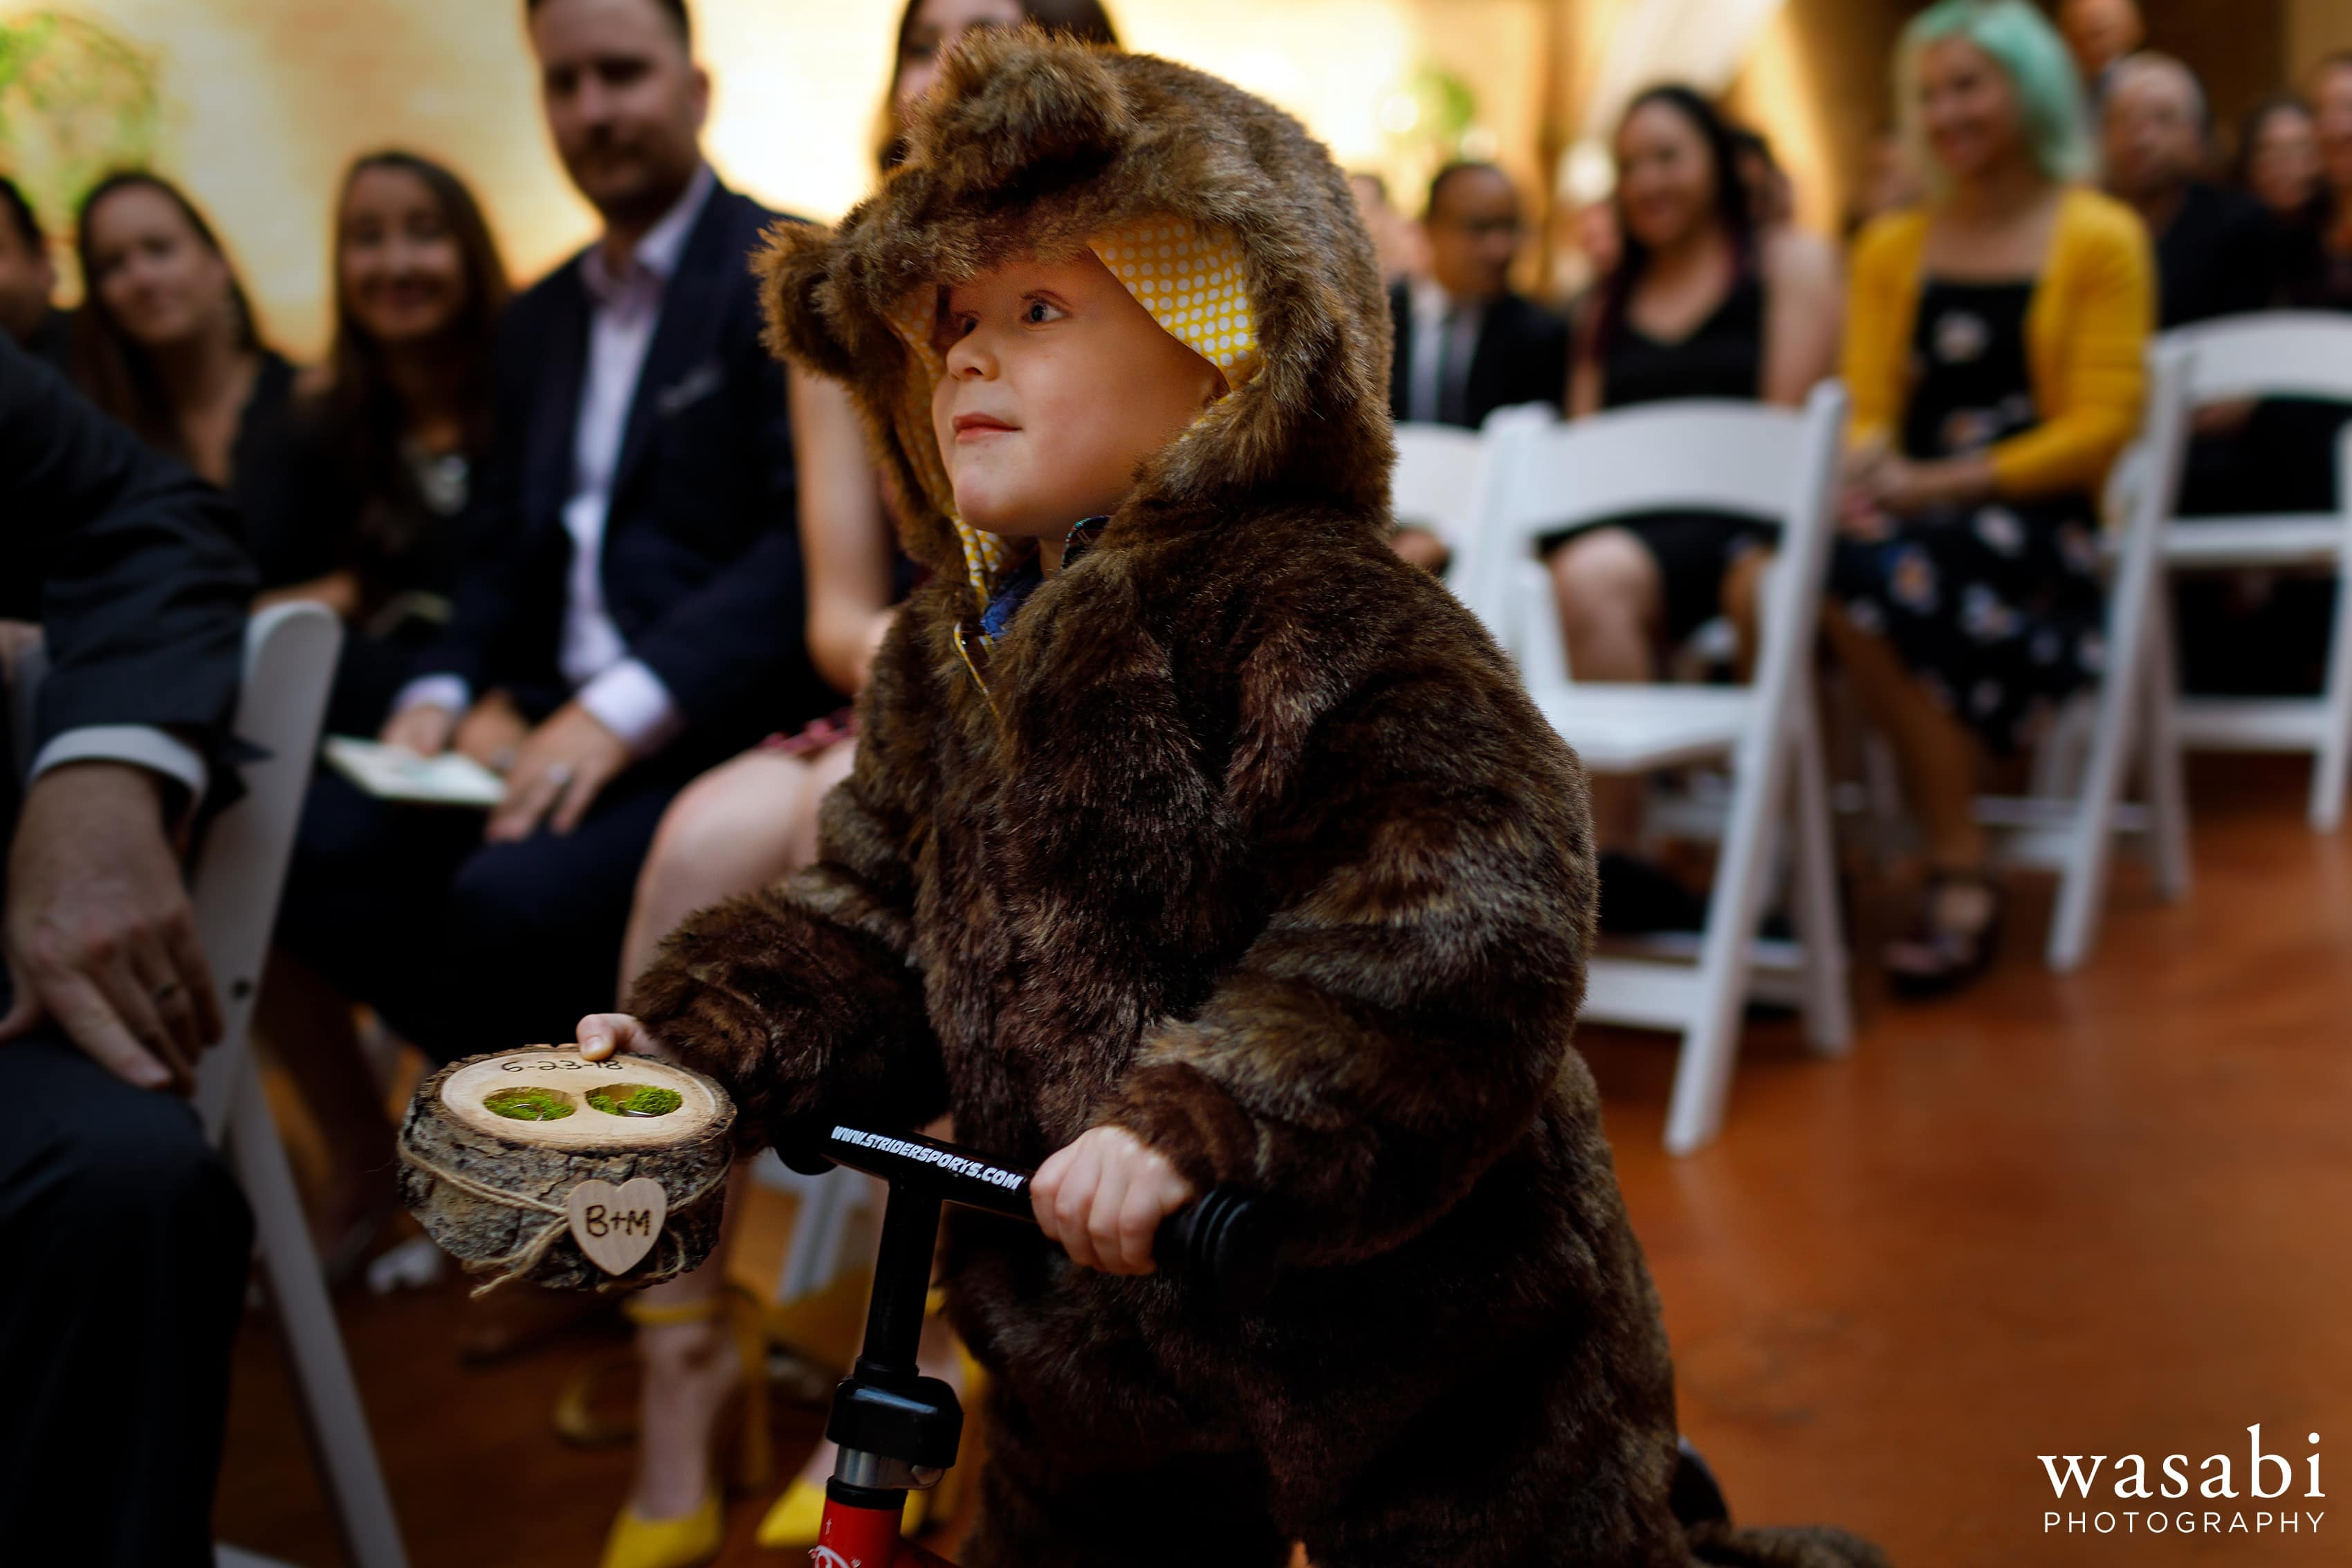 A ring bear rides his bike down the aisle to deliver the rings during a wedding ceremony Loft on Lake in Chicago